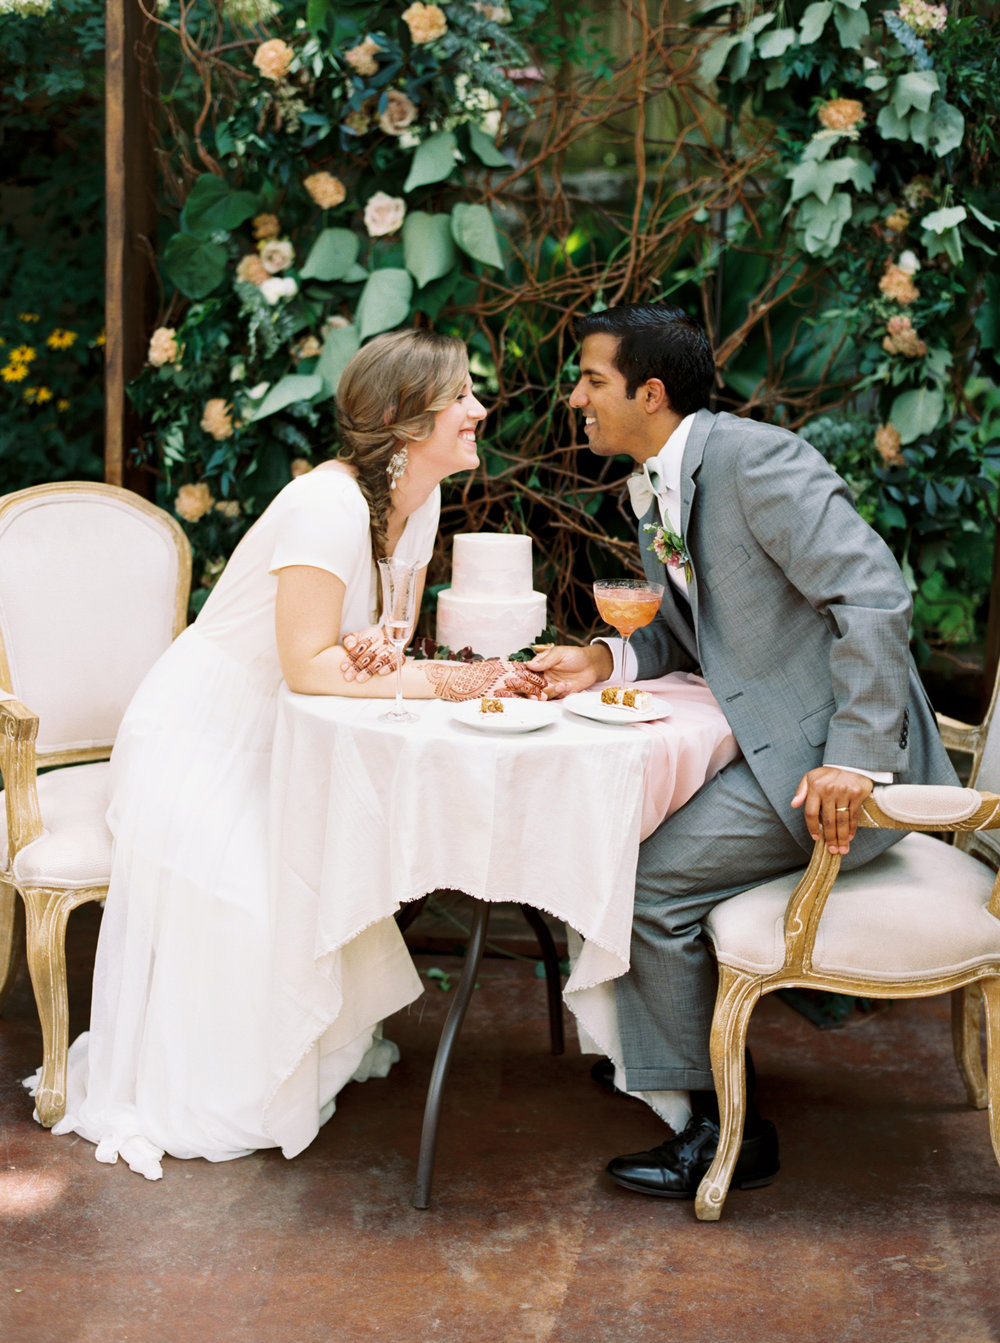 Wahoo_Grill_Atlanta_Indian_Wedding_Abigail_Malone_Photgoraphy_FIlm-153.jpg